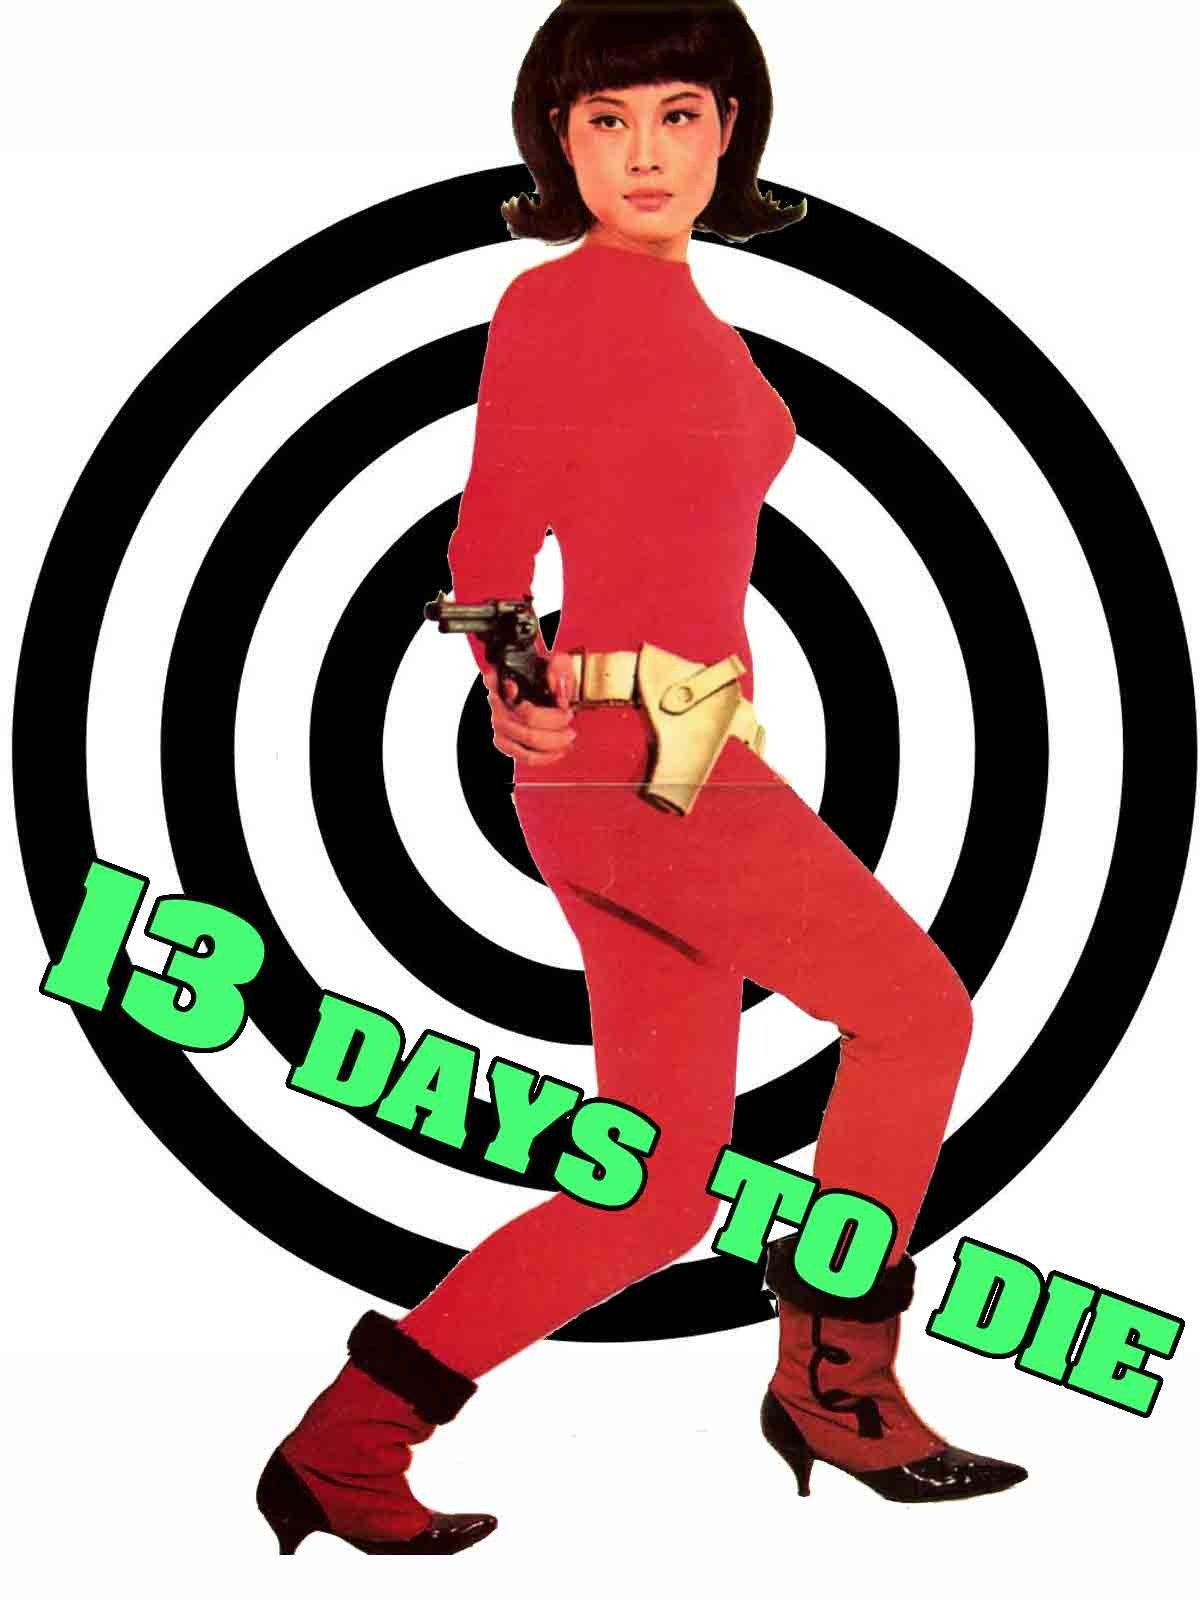 13 Days To Die